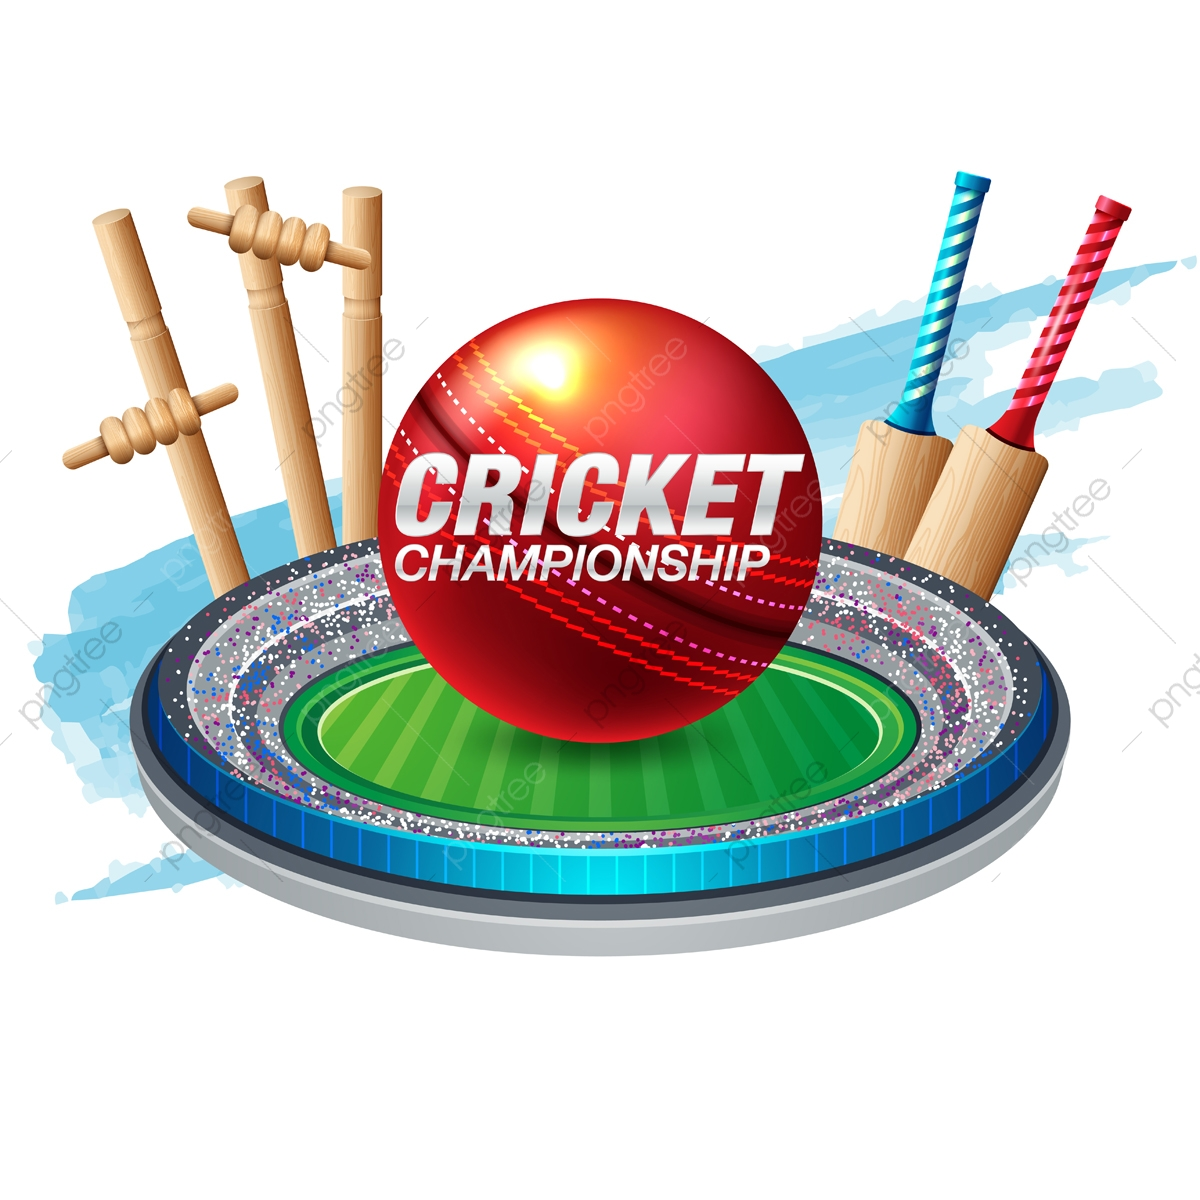 Illustration of batsman and. Cricket clipart cricket champion